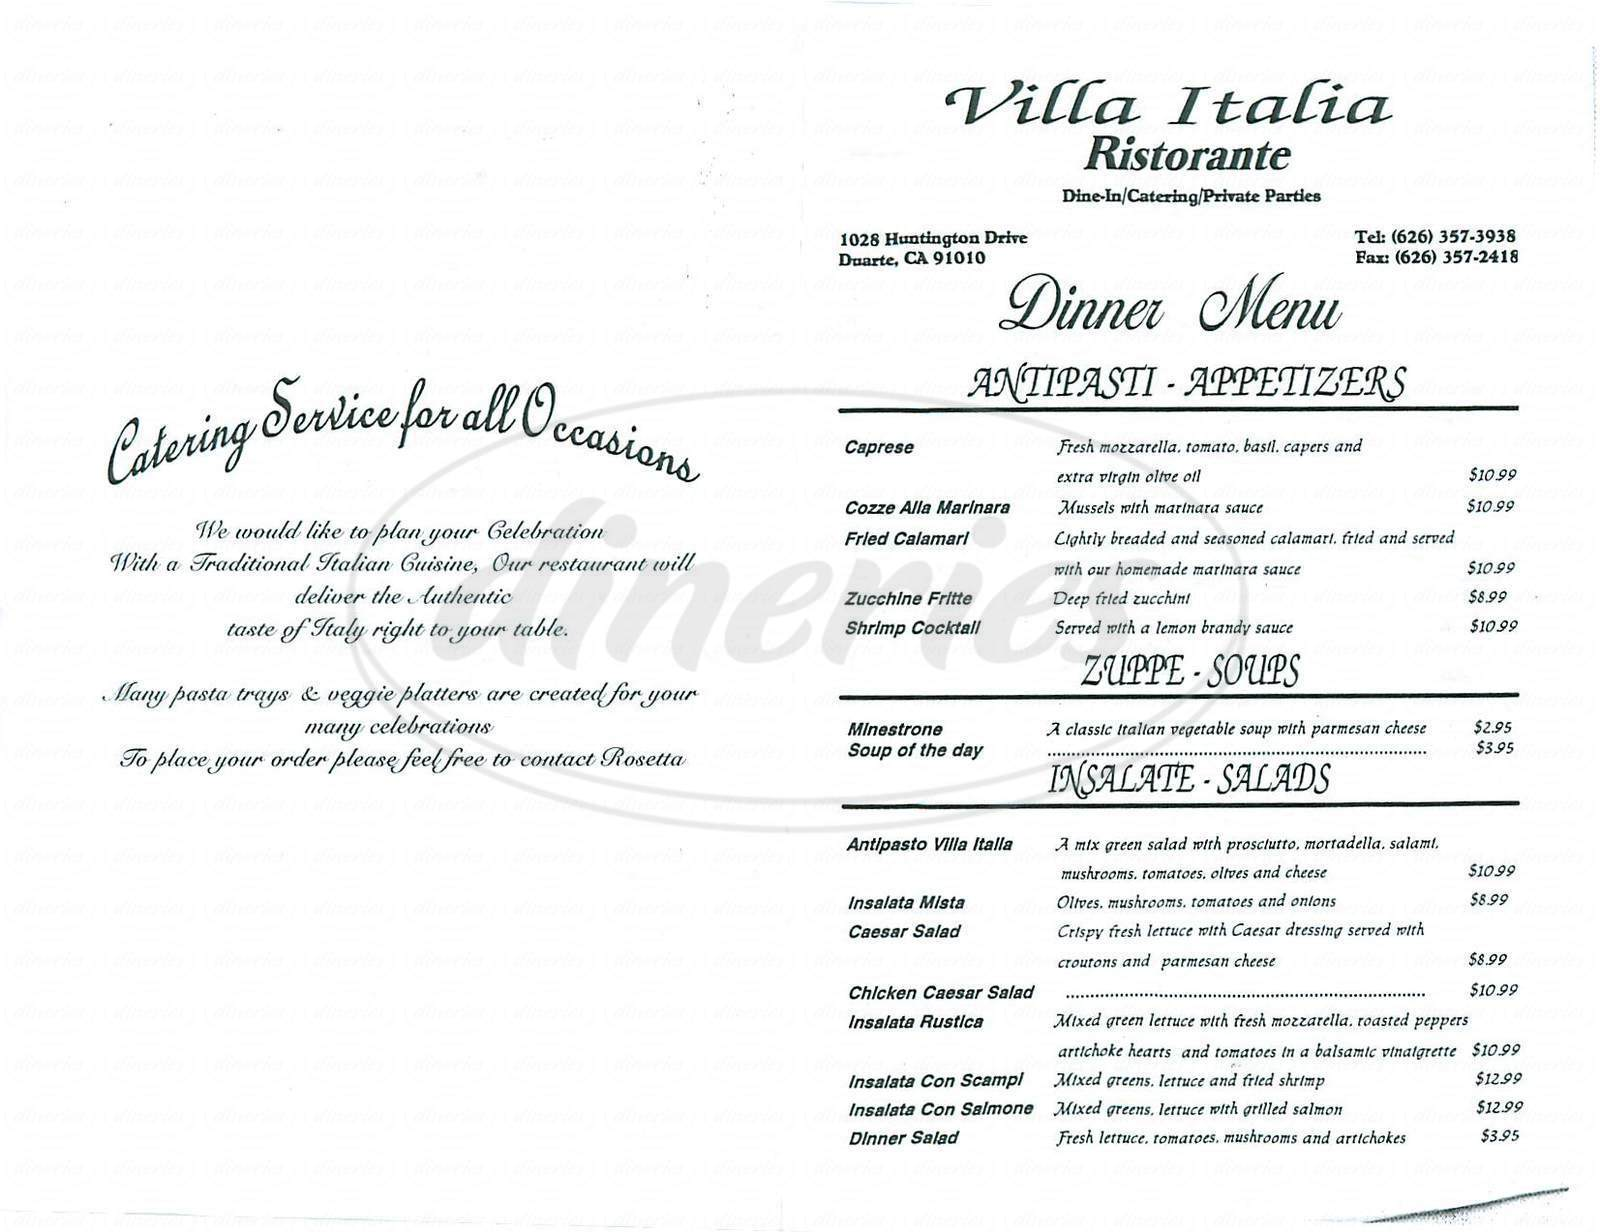 menu for Villa Italia Ristorante